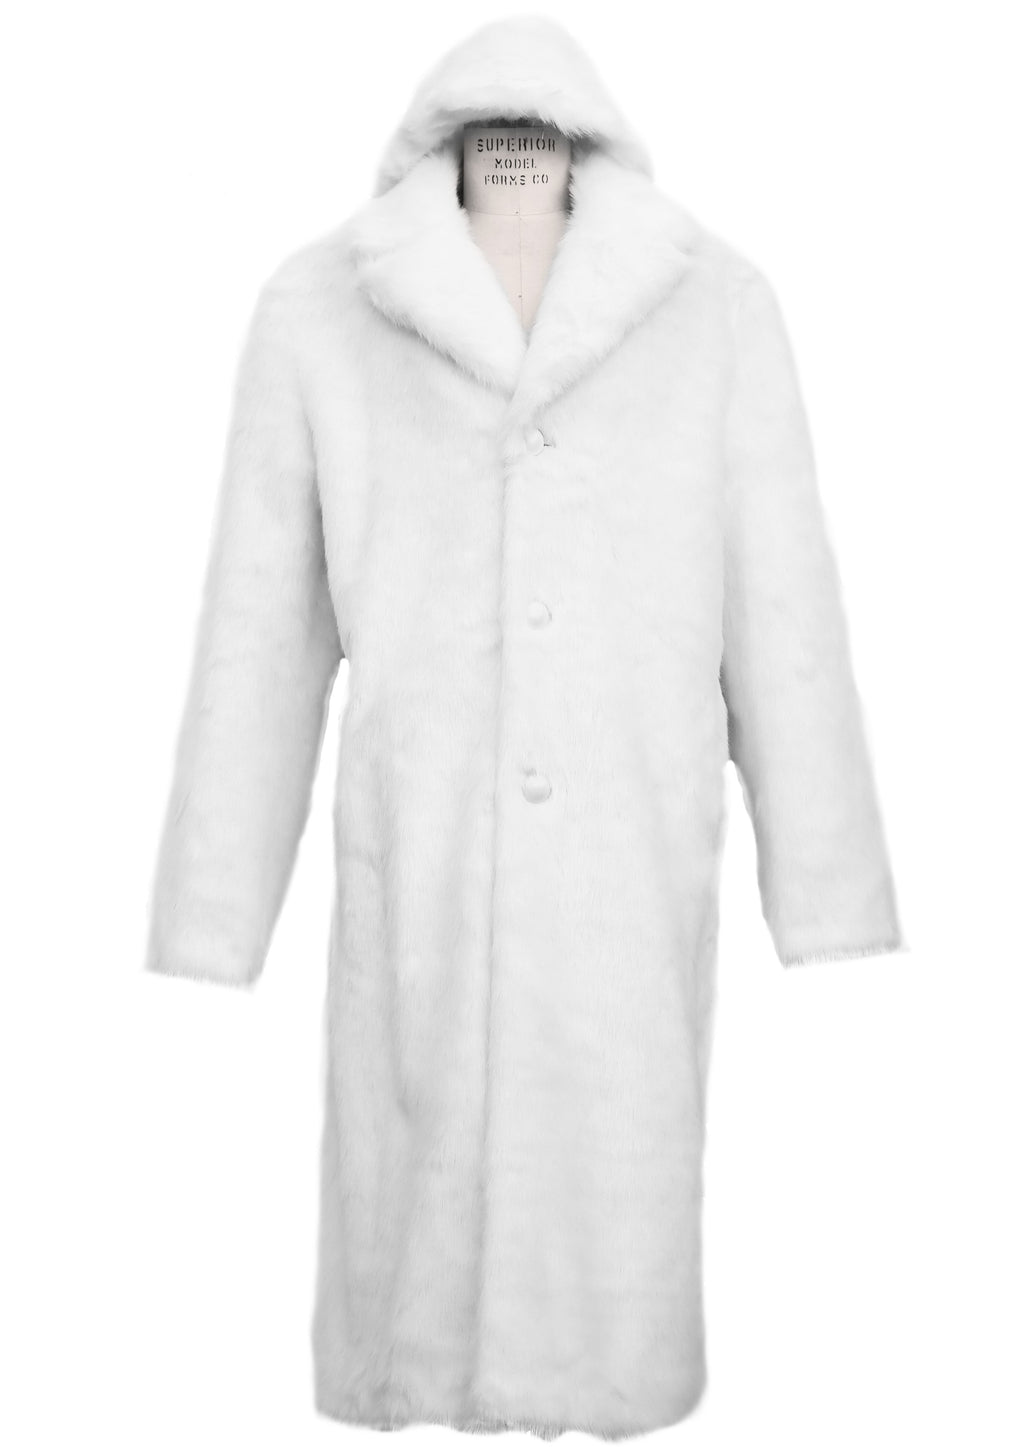 WINTER SPECIAL: FREE FUR HAT + Faux Arctic Fur Coat Buttoned 1pc Long Zoot Suit - Arctic White